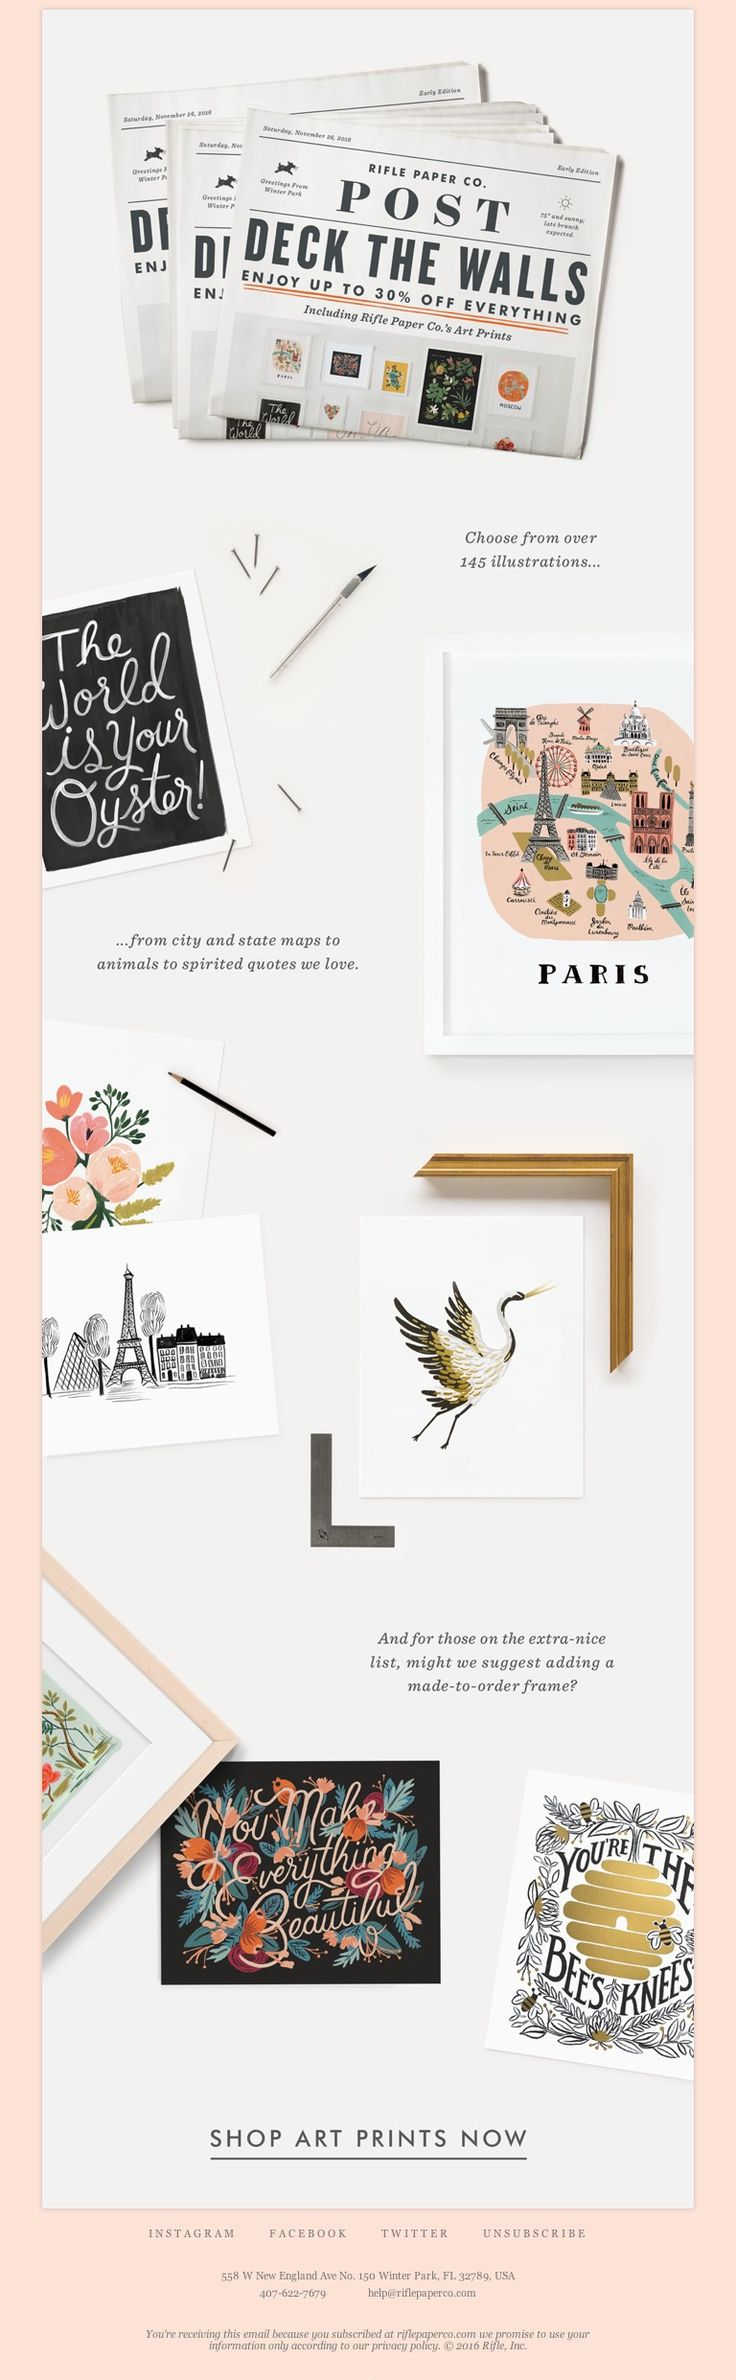 18 best Email Campaigns images on Pinterest | Craft supplies ...